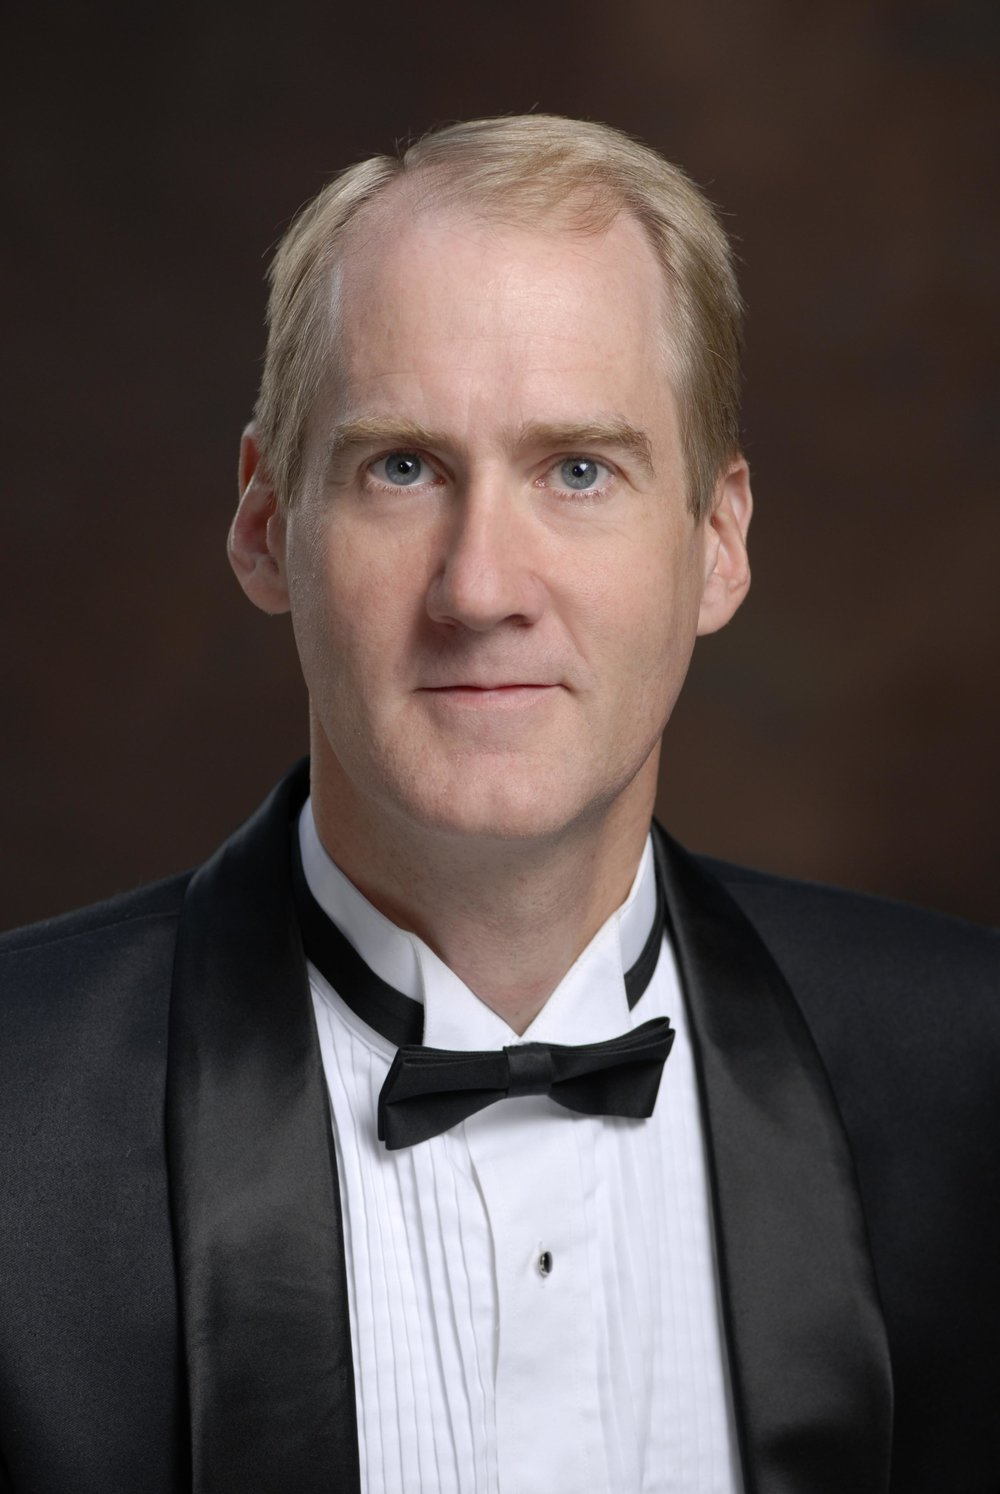 """Peter van de Graaff, narrator - A native of the Chicago area, Peter van de Graaff began his radio career at KBYU in Provo, Utah in 1984 and went to WFMT in Chicago in 1988. In 1989 he began hosting a nationally-syndicated program called the """"Beethoven Network"""", carried on 150 stations throughout the country.In September 2010, Peter van de Graaff was awarded the sixth """"Karl Haas Award for Musical Education"""" from Public Radio International, joining other winners Leonard Slatkin, Michael Tilson Thomas, Peter Schickele, Bill McGlaughlin and Martin Bookspan. Peter now is the music director of KWAX.He has hosted two nationally-syndicated opera series on National Public Radio and has been heard on many other national broadcasts such as the Vienna Philharmonic, the Van Cliburn Competition, Music of the Baroque and others. He was one of the finalists for host of the Metropolitan Opera radio broadcasts."""